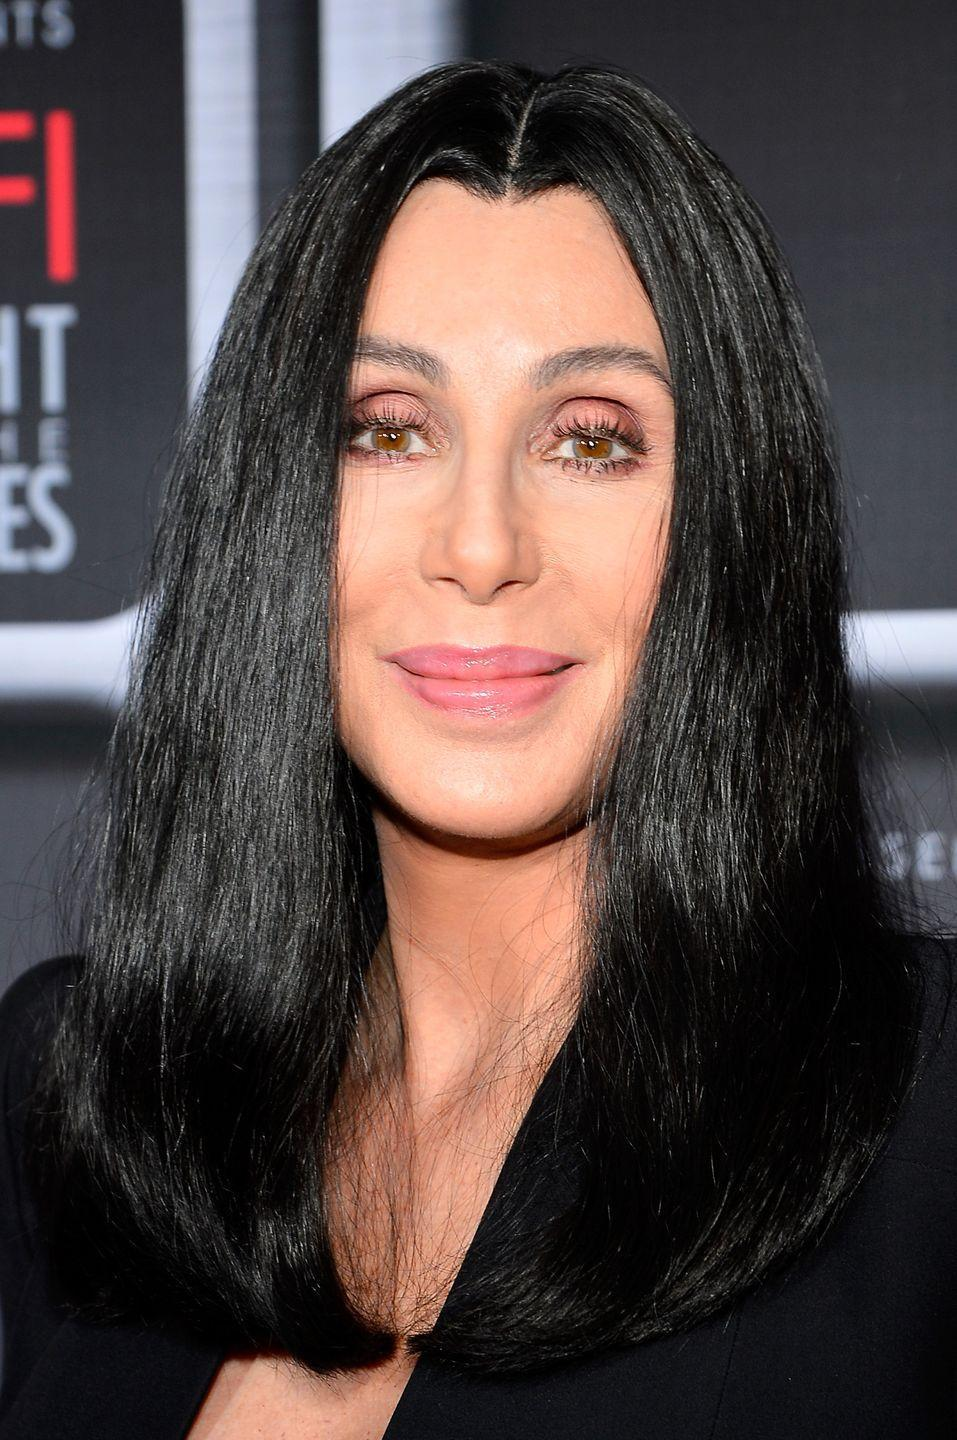 "<p>""It could have been a much better film. It was always sad that it was not a good film,"" she told <a href=""http://www.theguardian.com/music/2013/nov/07/cher-women-sex-objects-interview"" rel=""nofollow noopener"" target=""_blank"" data-ylk=""slk:The Guardian"" class=""link rapid-noclick-resp""><em>The Guardian</em></a> in 2013, calling director Steve Antin a ""really terrible director."" ""I remember [Antin] saying to me, 'I don't care about what you say, I just want to shoot the dance numbers.'""</p>"